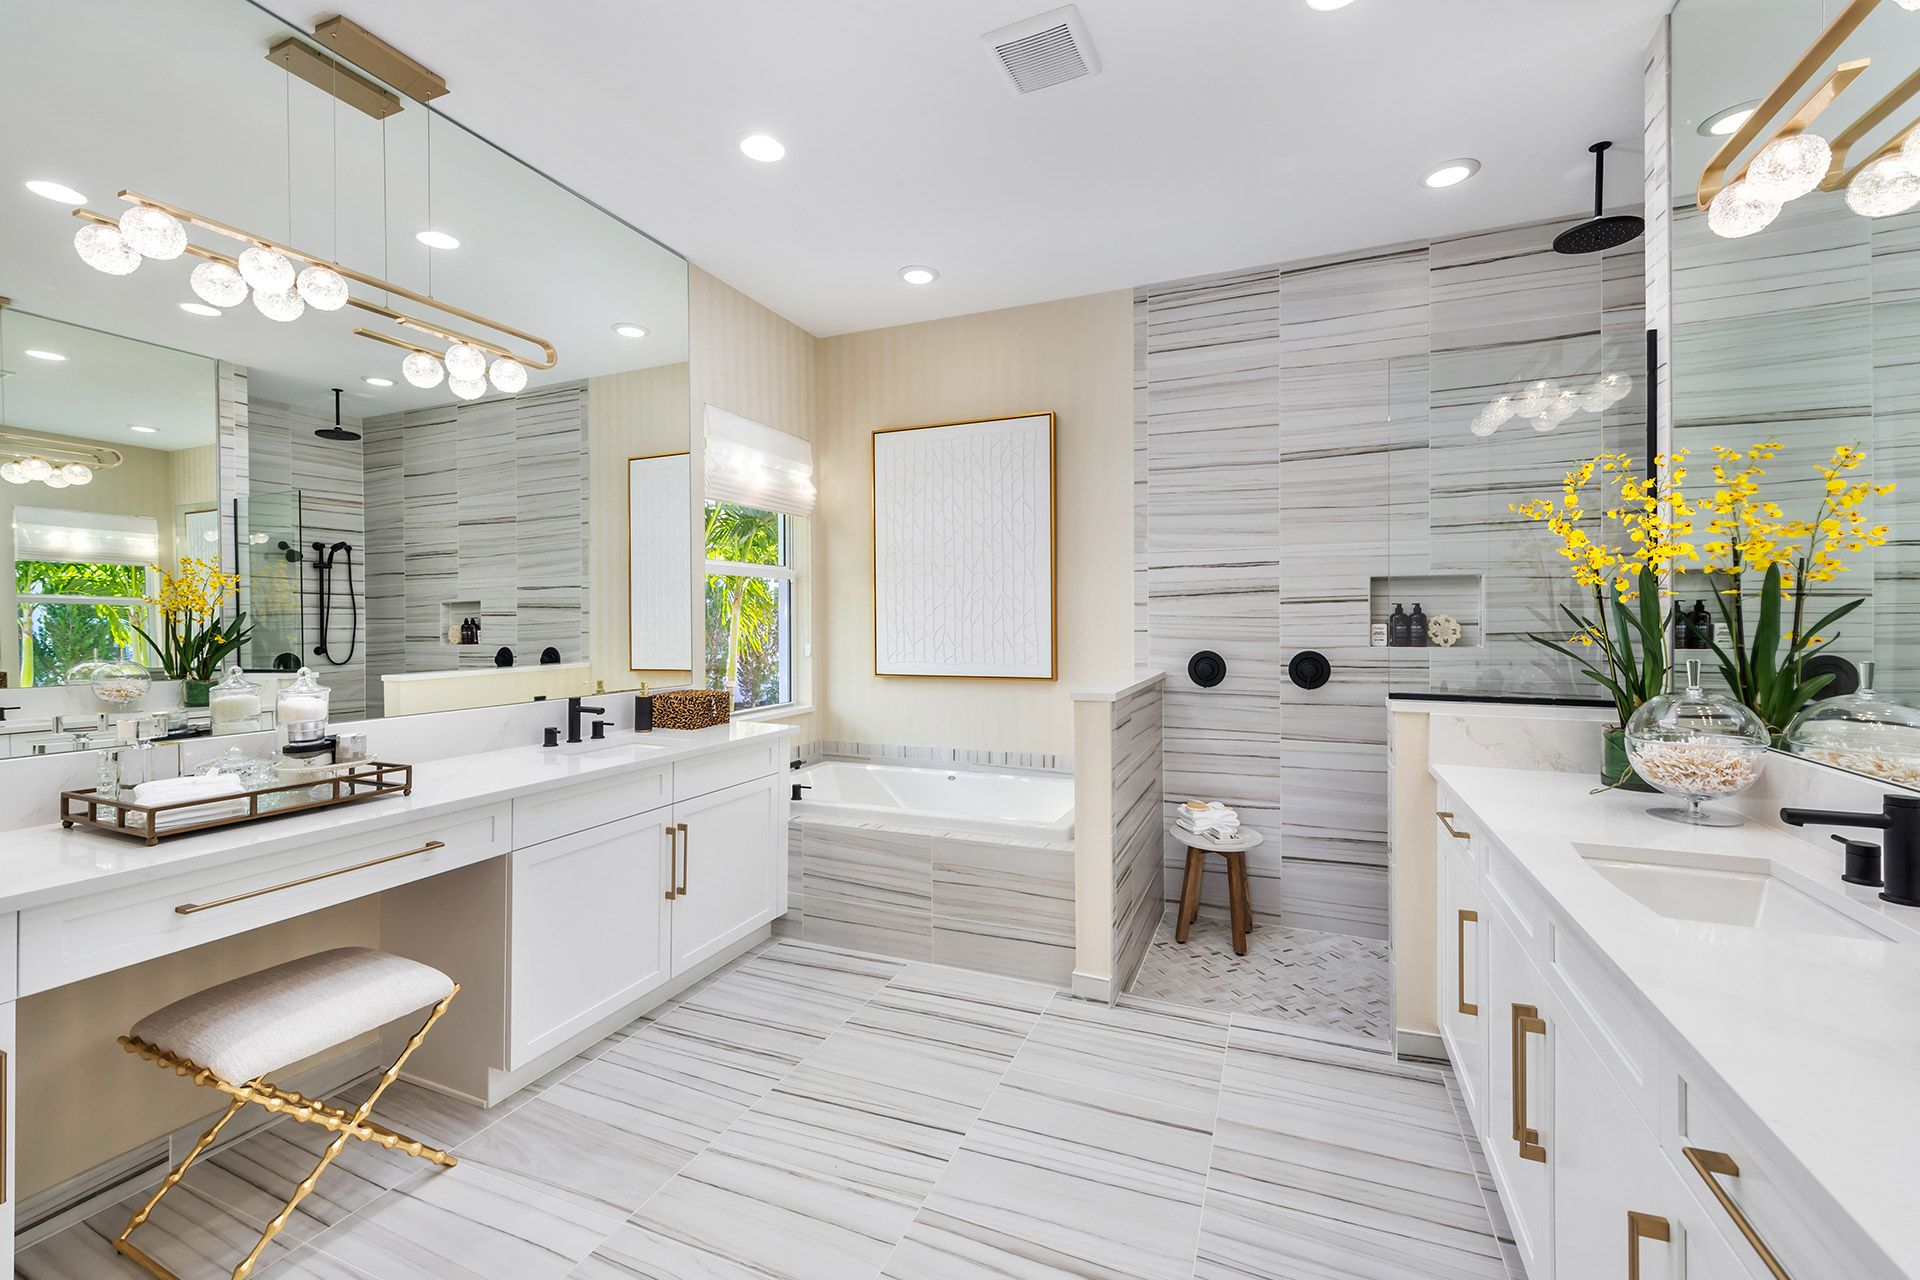 Bathroom featured in the Estero By GL Homes in Naples, FL